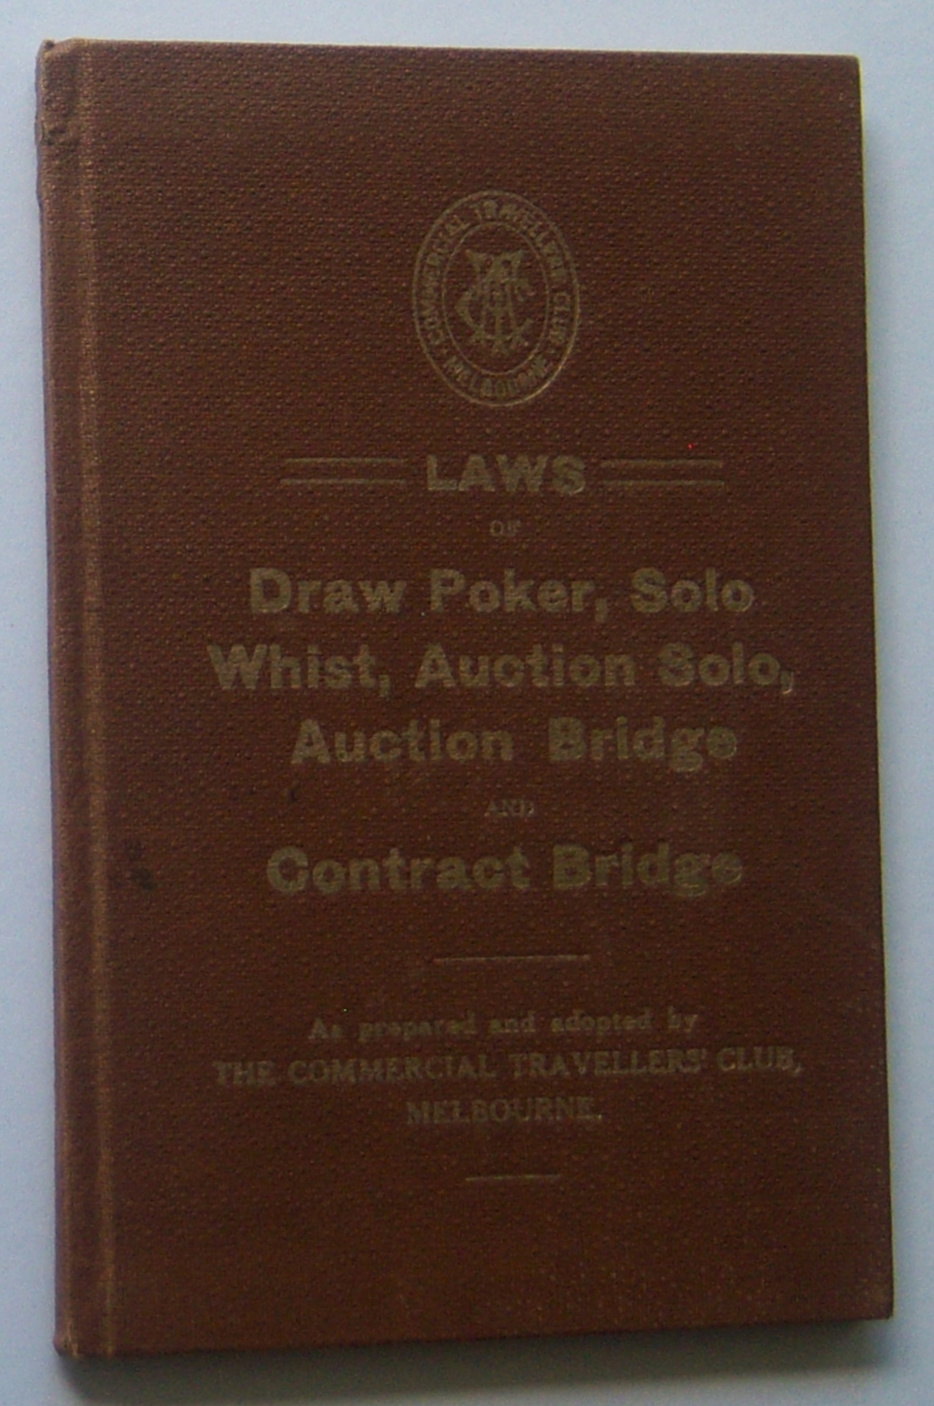 Image for LAWS OF DRAW POKER, SOLO WHIST, AUCTION SOLO,  AUCTION BRIDGE AND CONTRACT BRIDGE (As prepared and adopted by the Commerical Travellers' Club, Melbourne